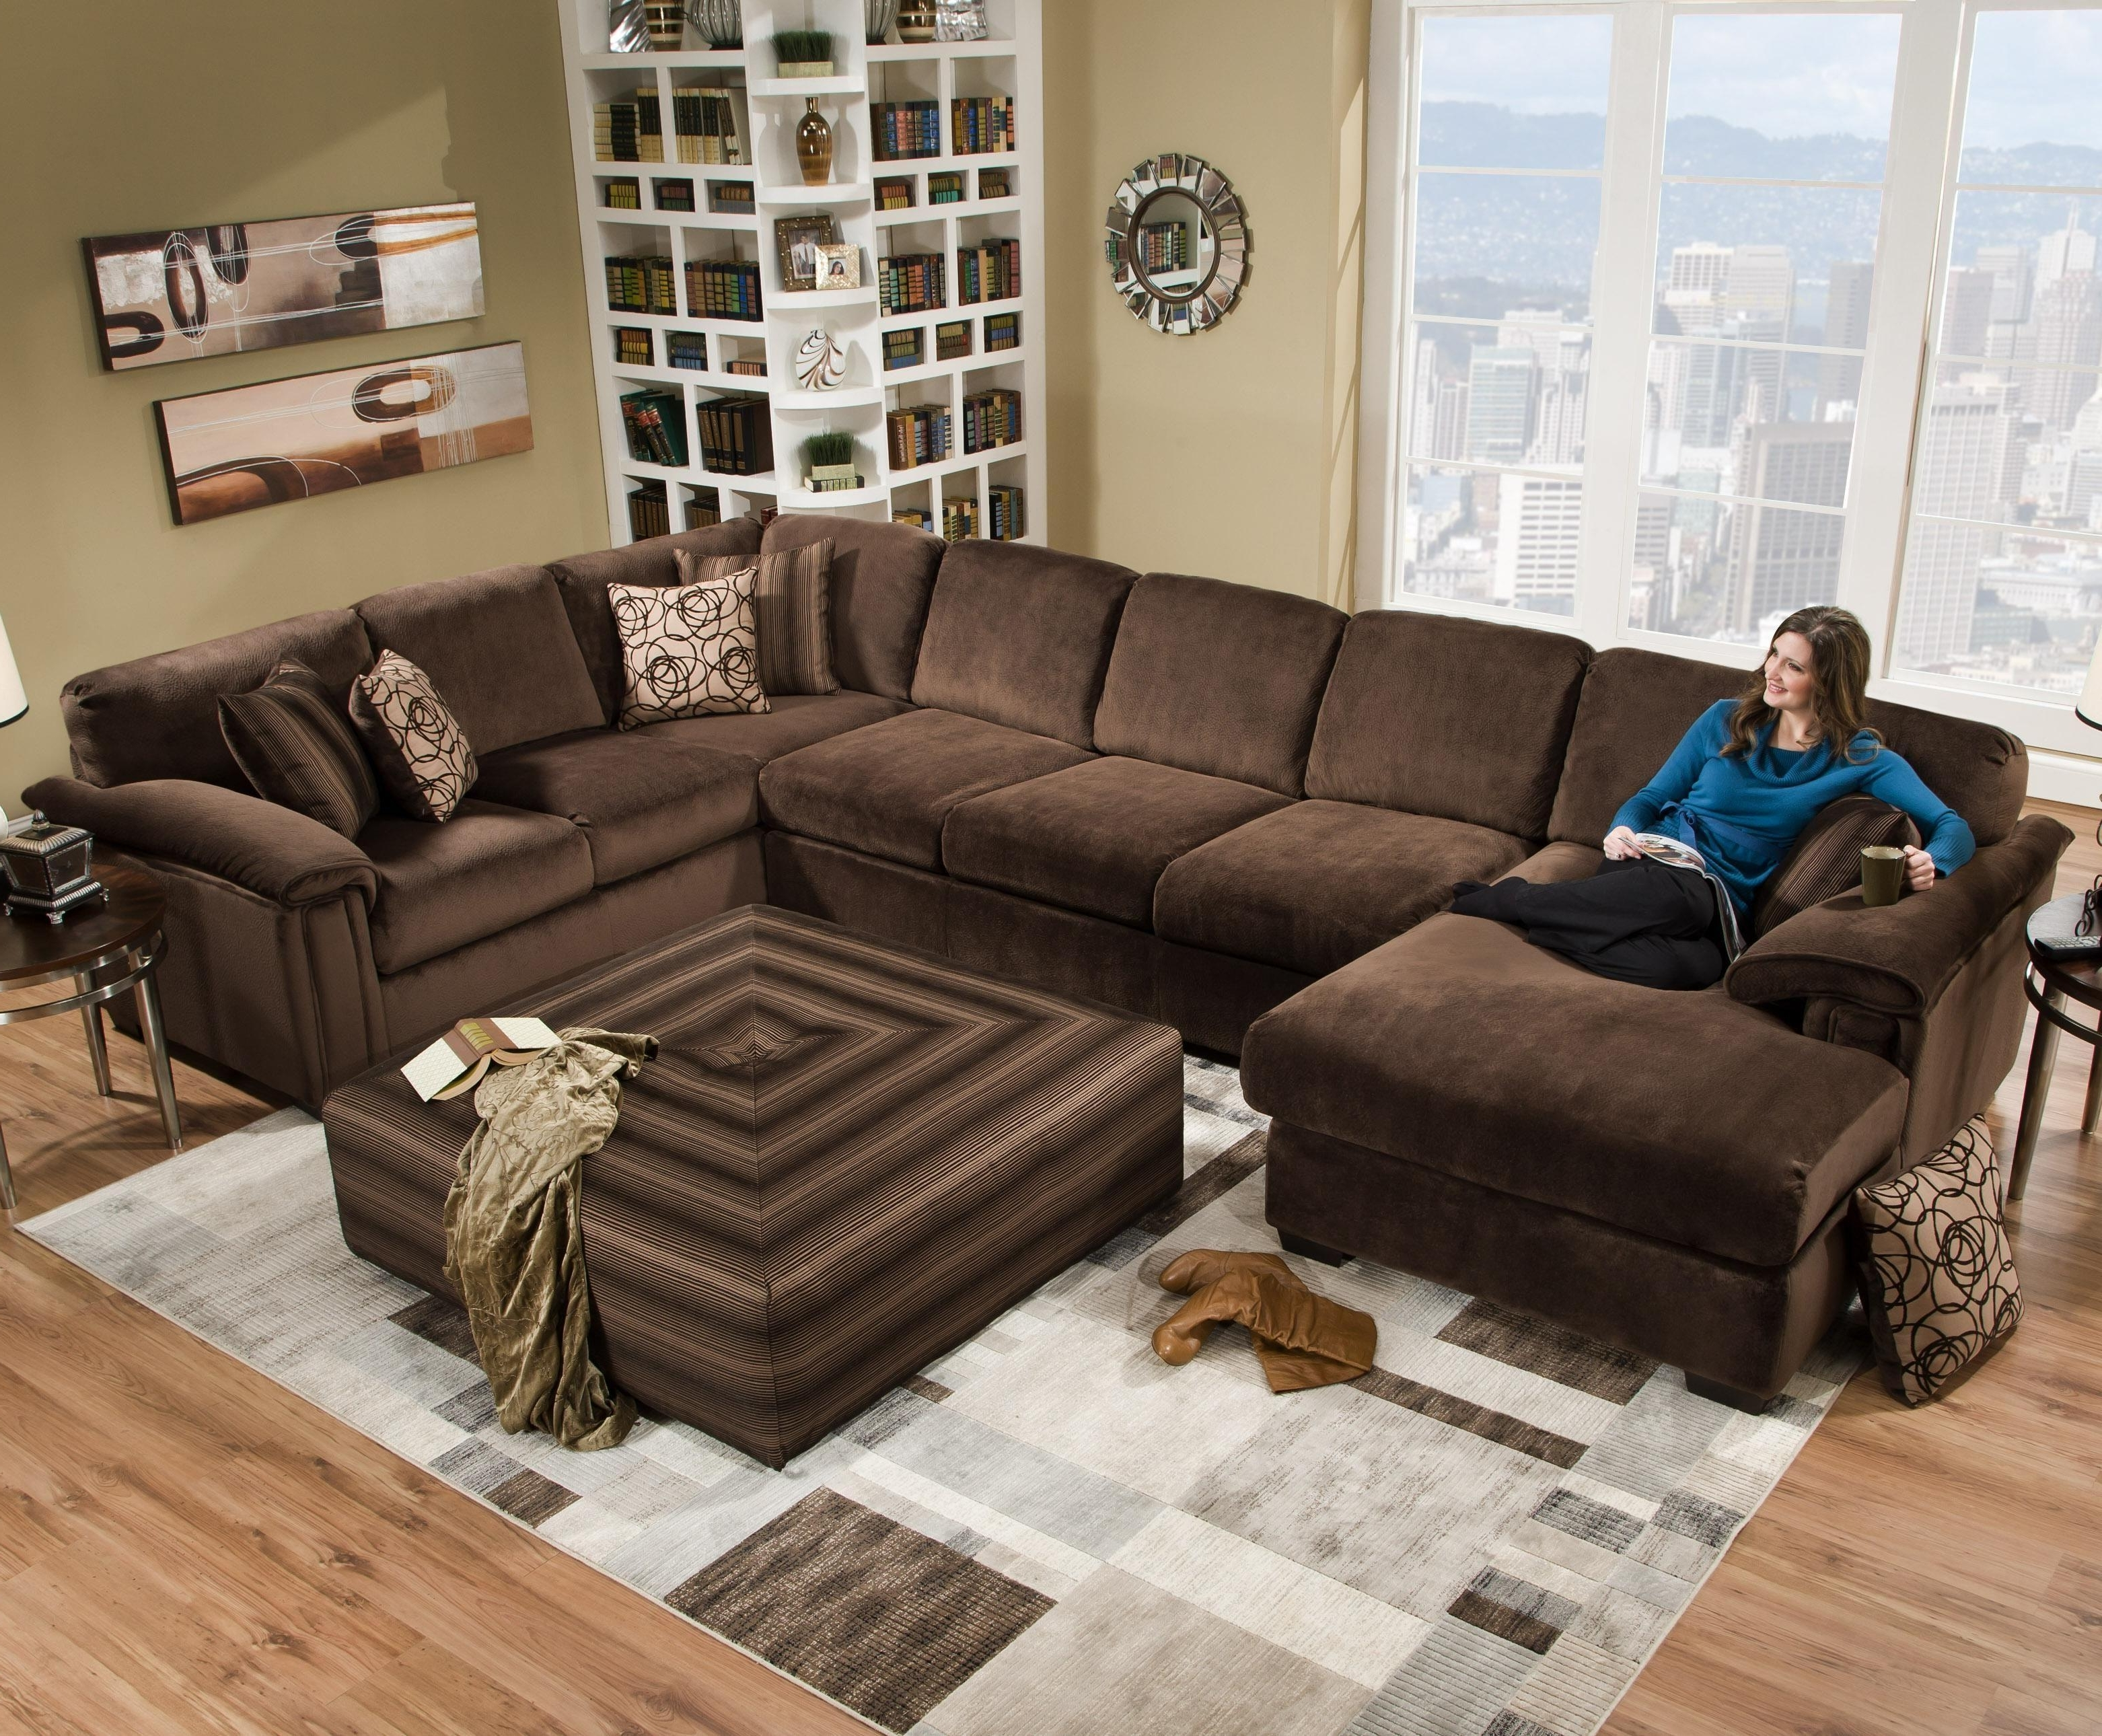 Furniture Nebraska Mart Couches Lovely Six Person With Regard To Most Por